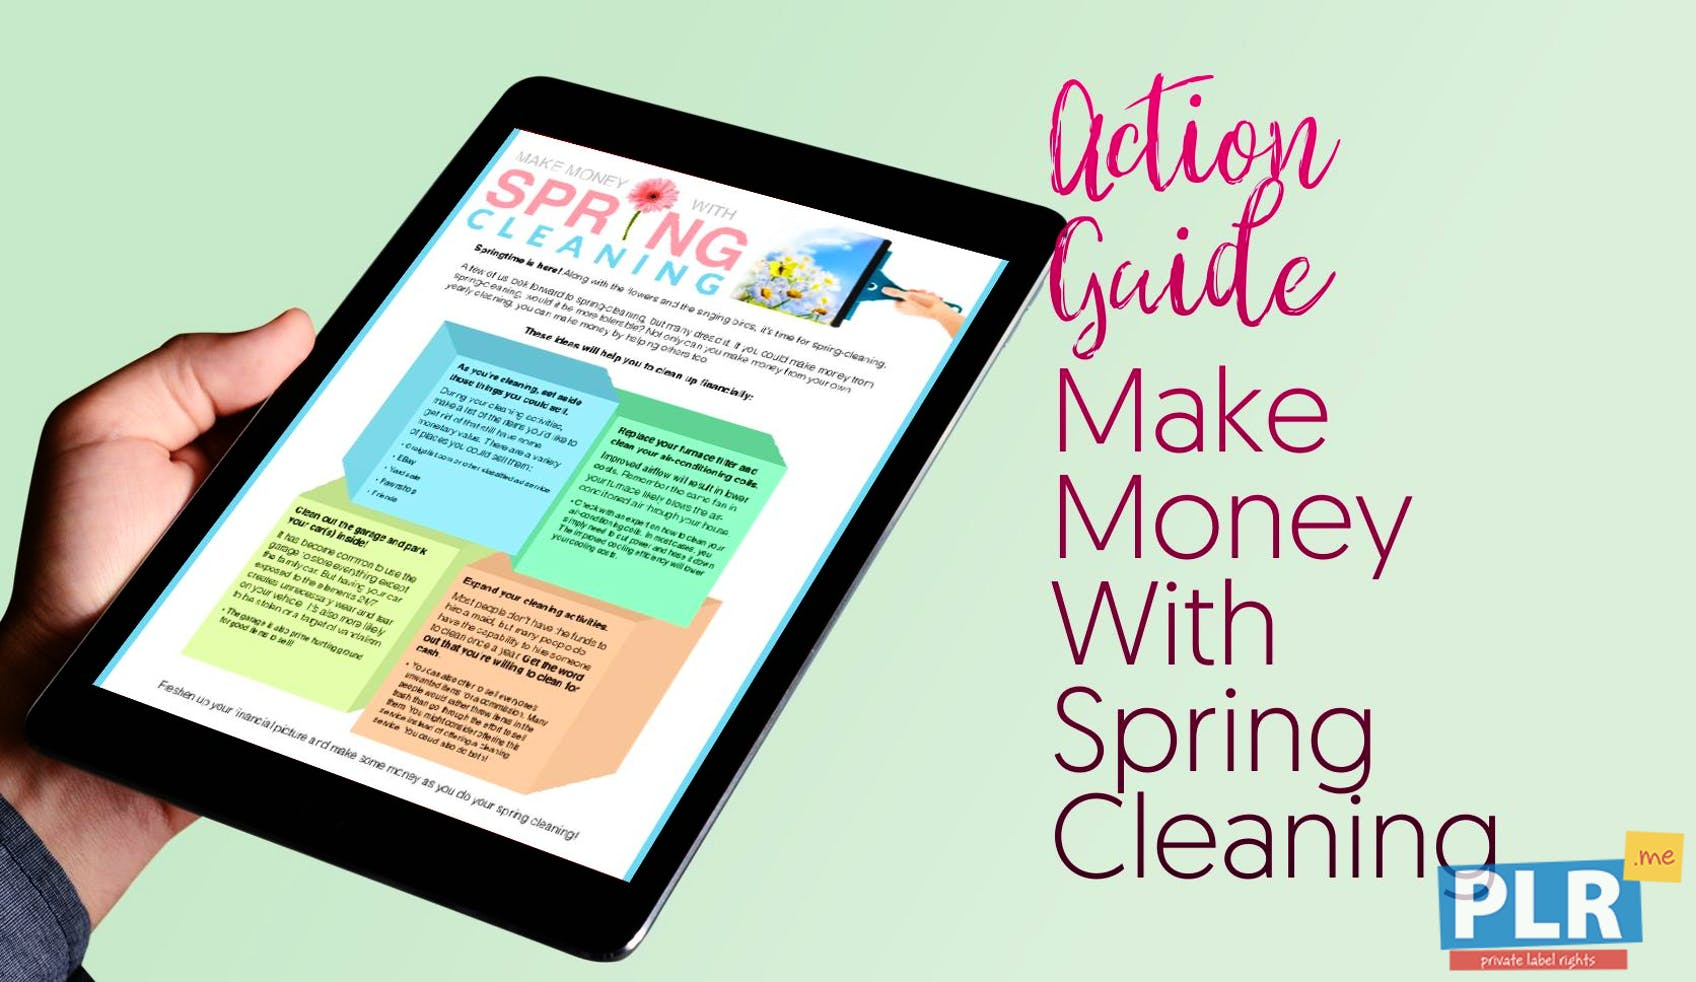 Make Money With Spring Cleaning